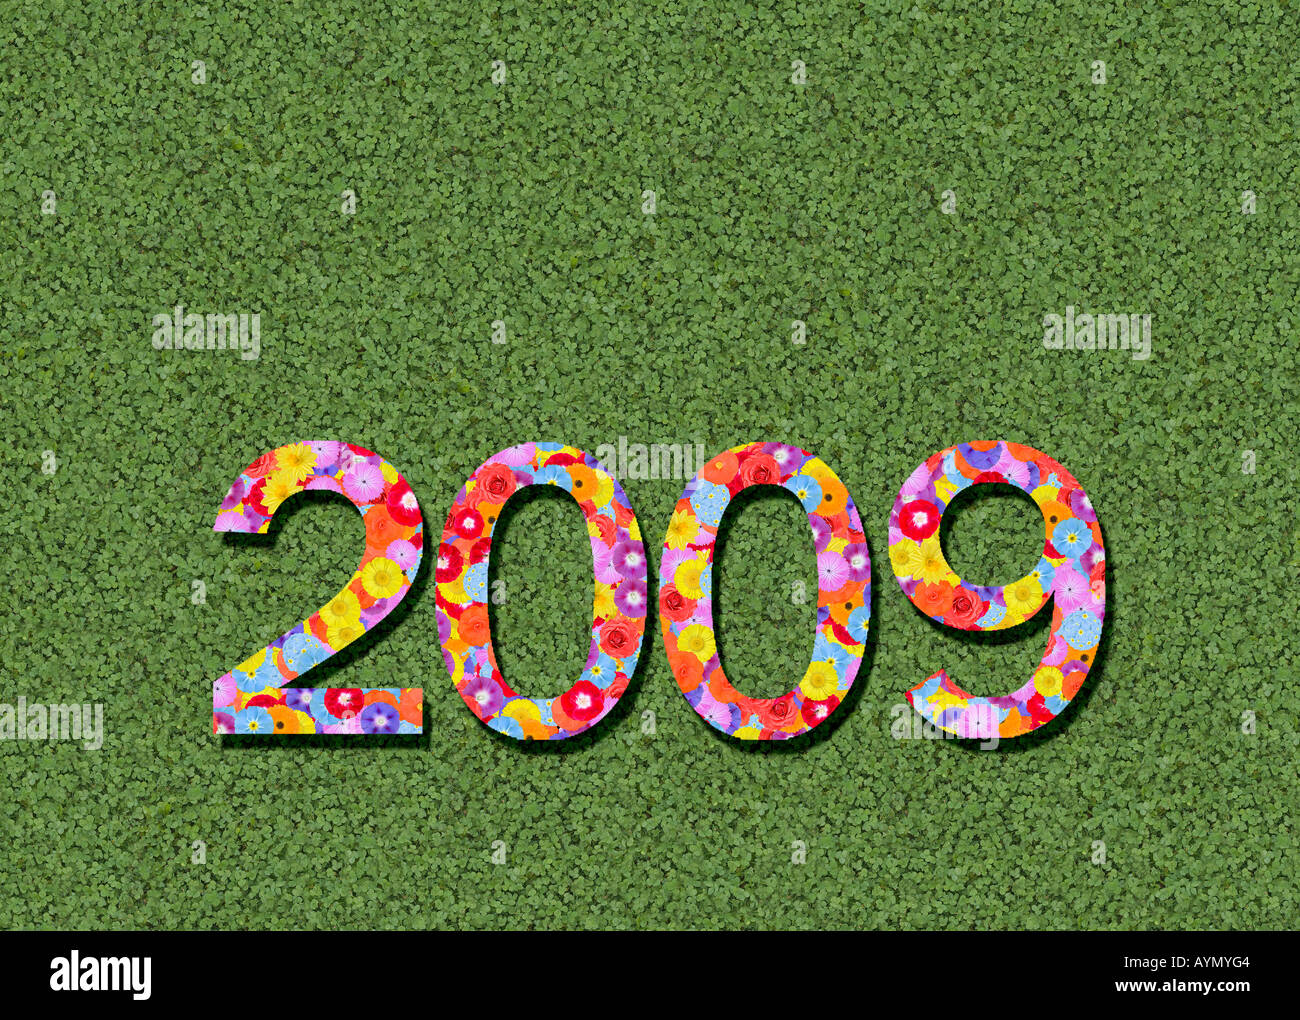 year 2009 spelled out prewritten edited - Stock Image